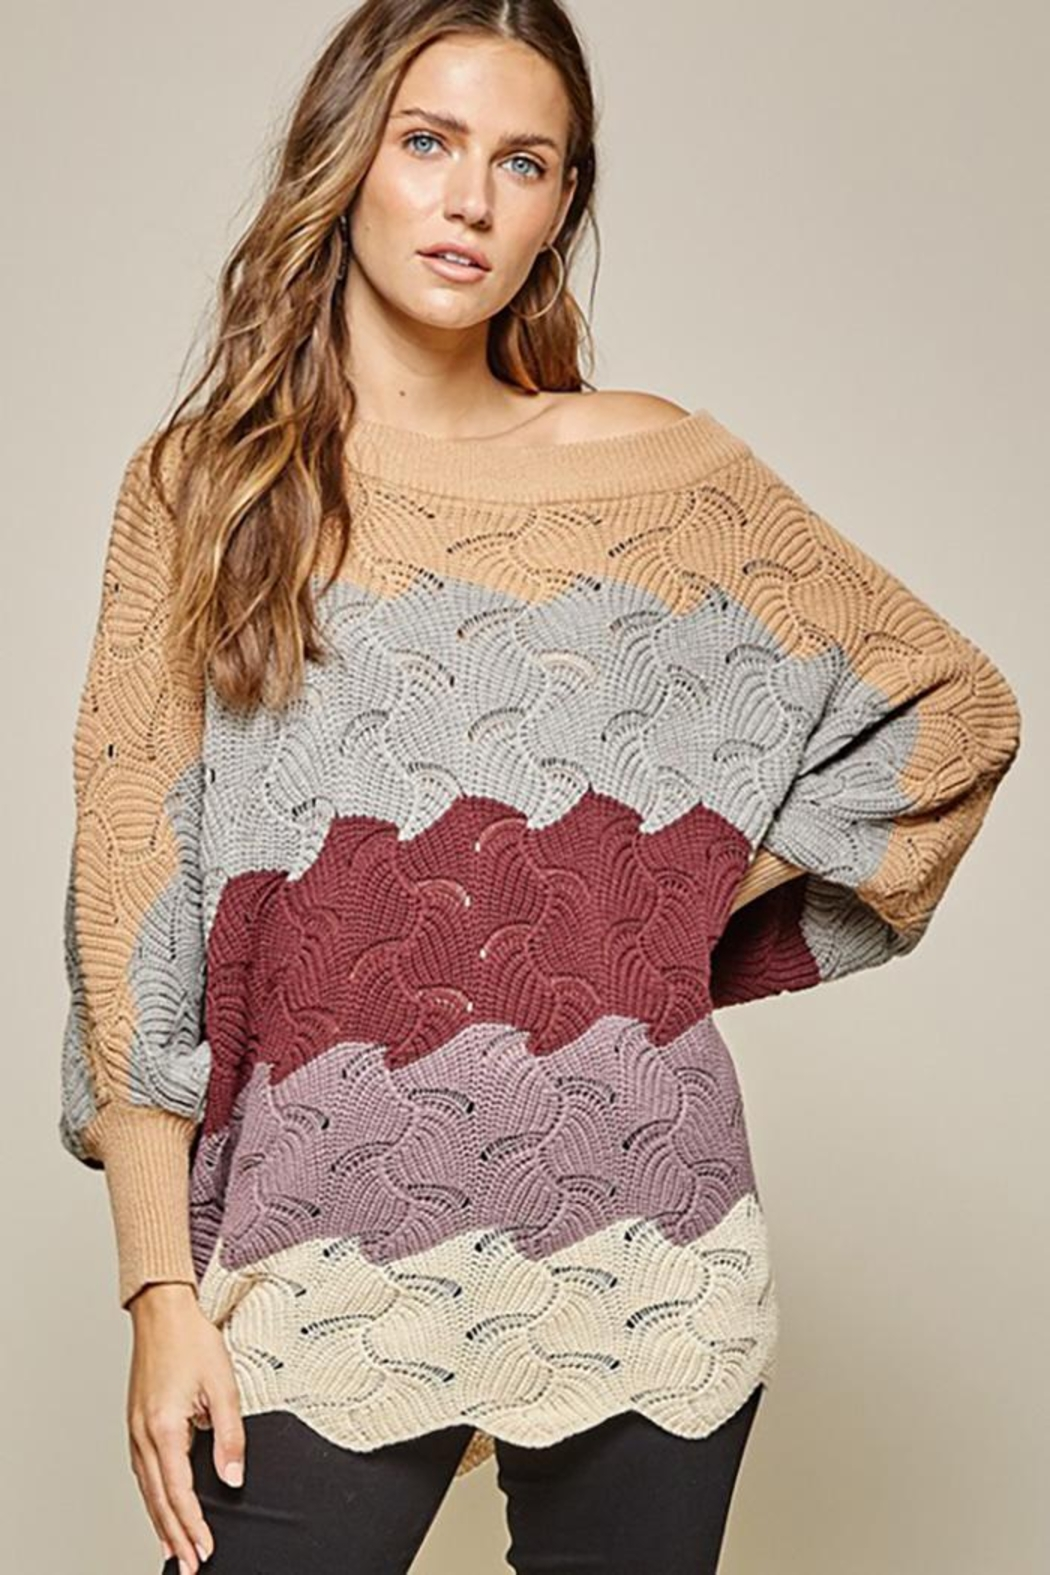 Andree by Unit Dolman Sleeves Oversized Fit Sweater - Main Image